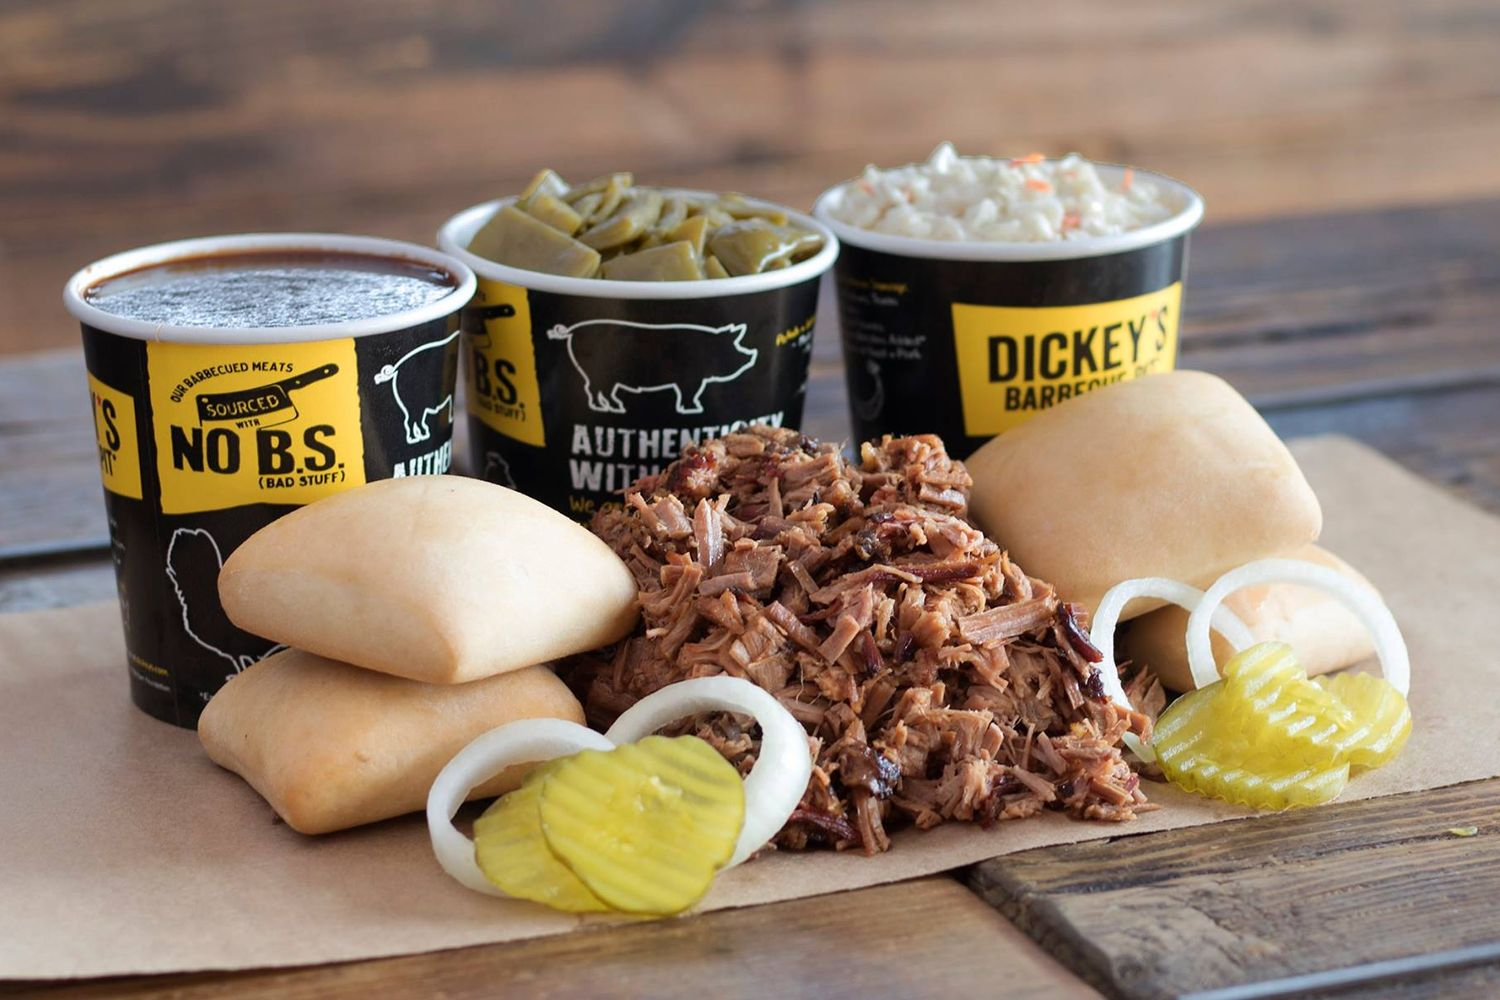 Development Agreement Brings New Dickey's Barbecue Pit Master and Location to Georgia